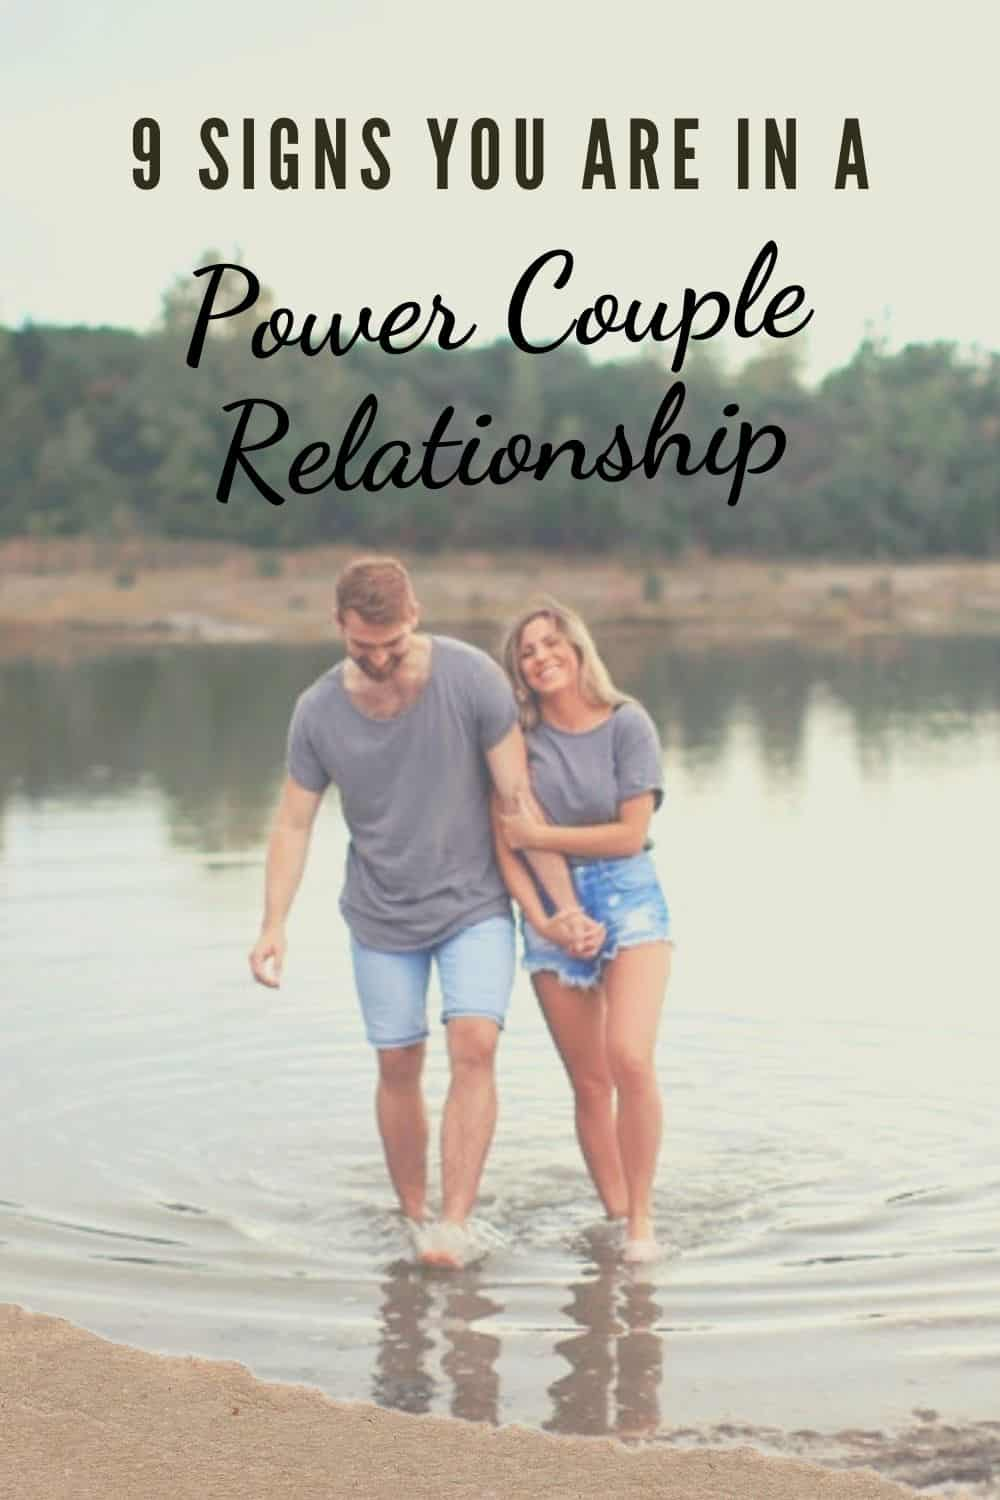 9 Signs You Are In A Power Couple Relationship